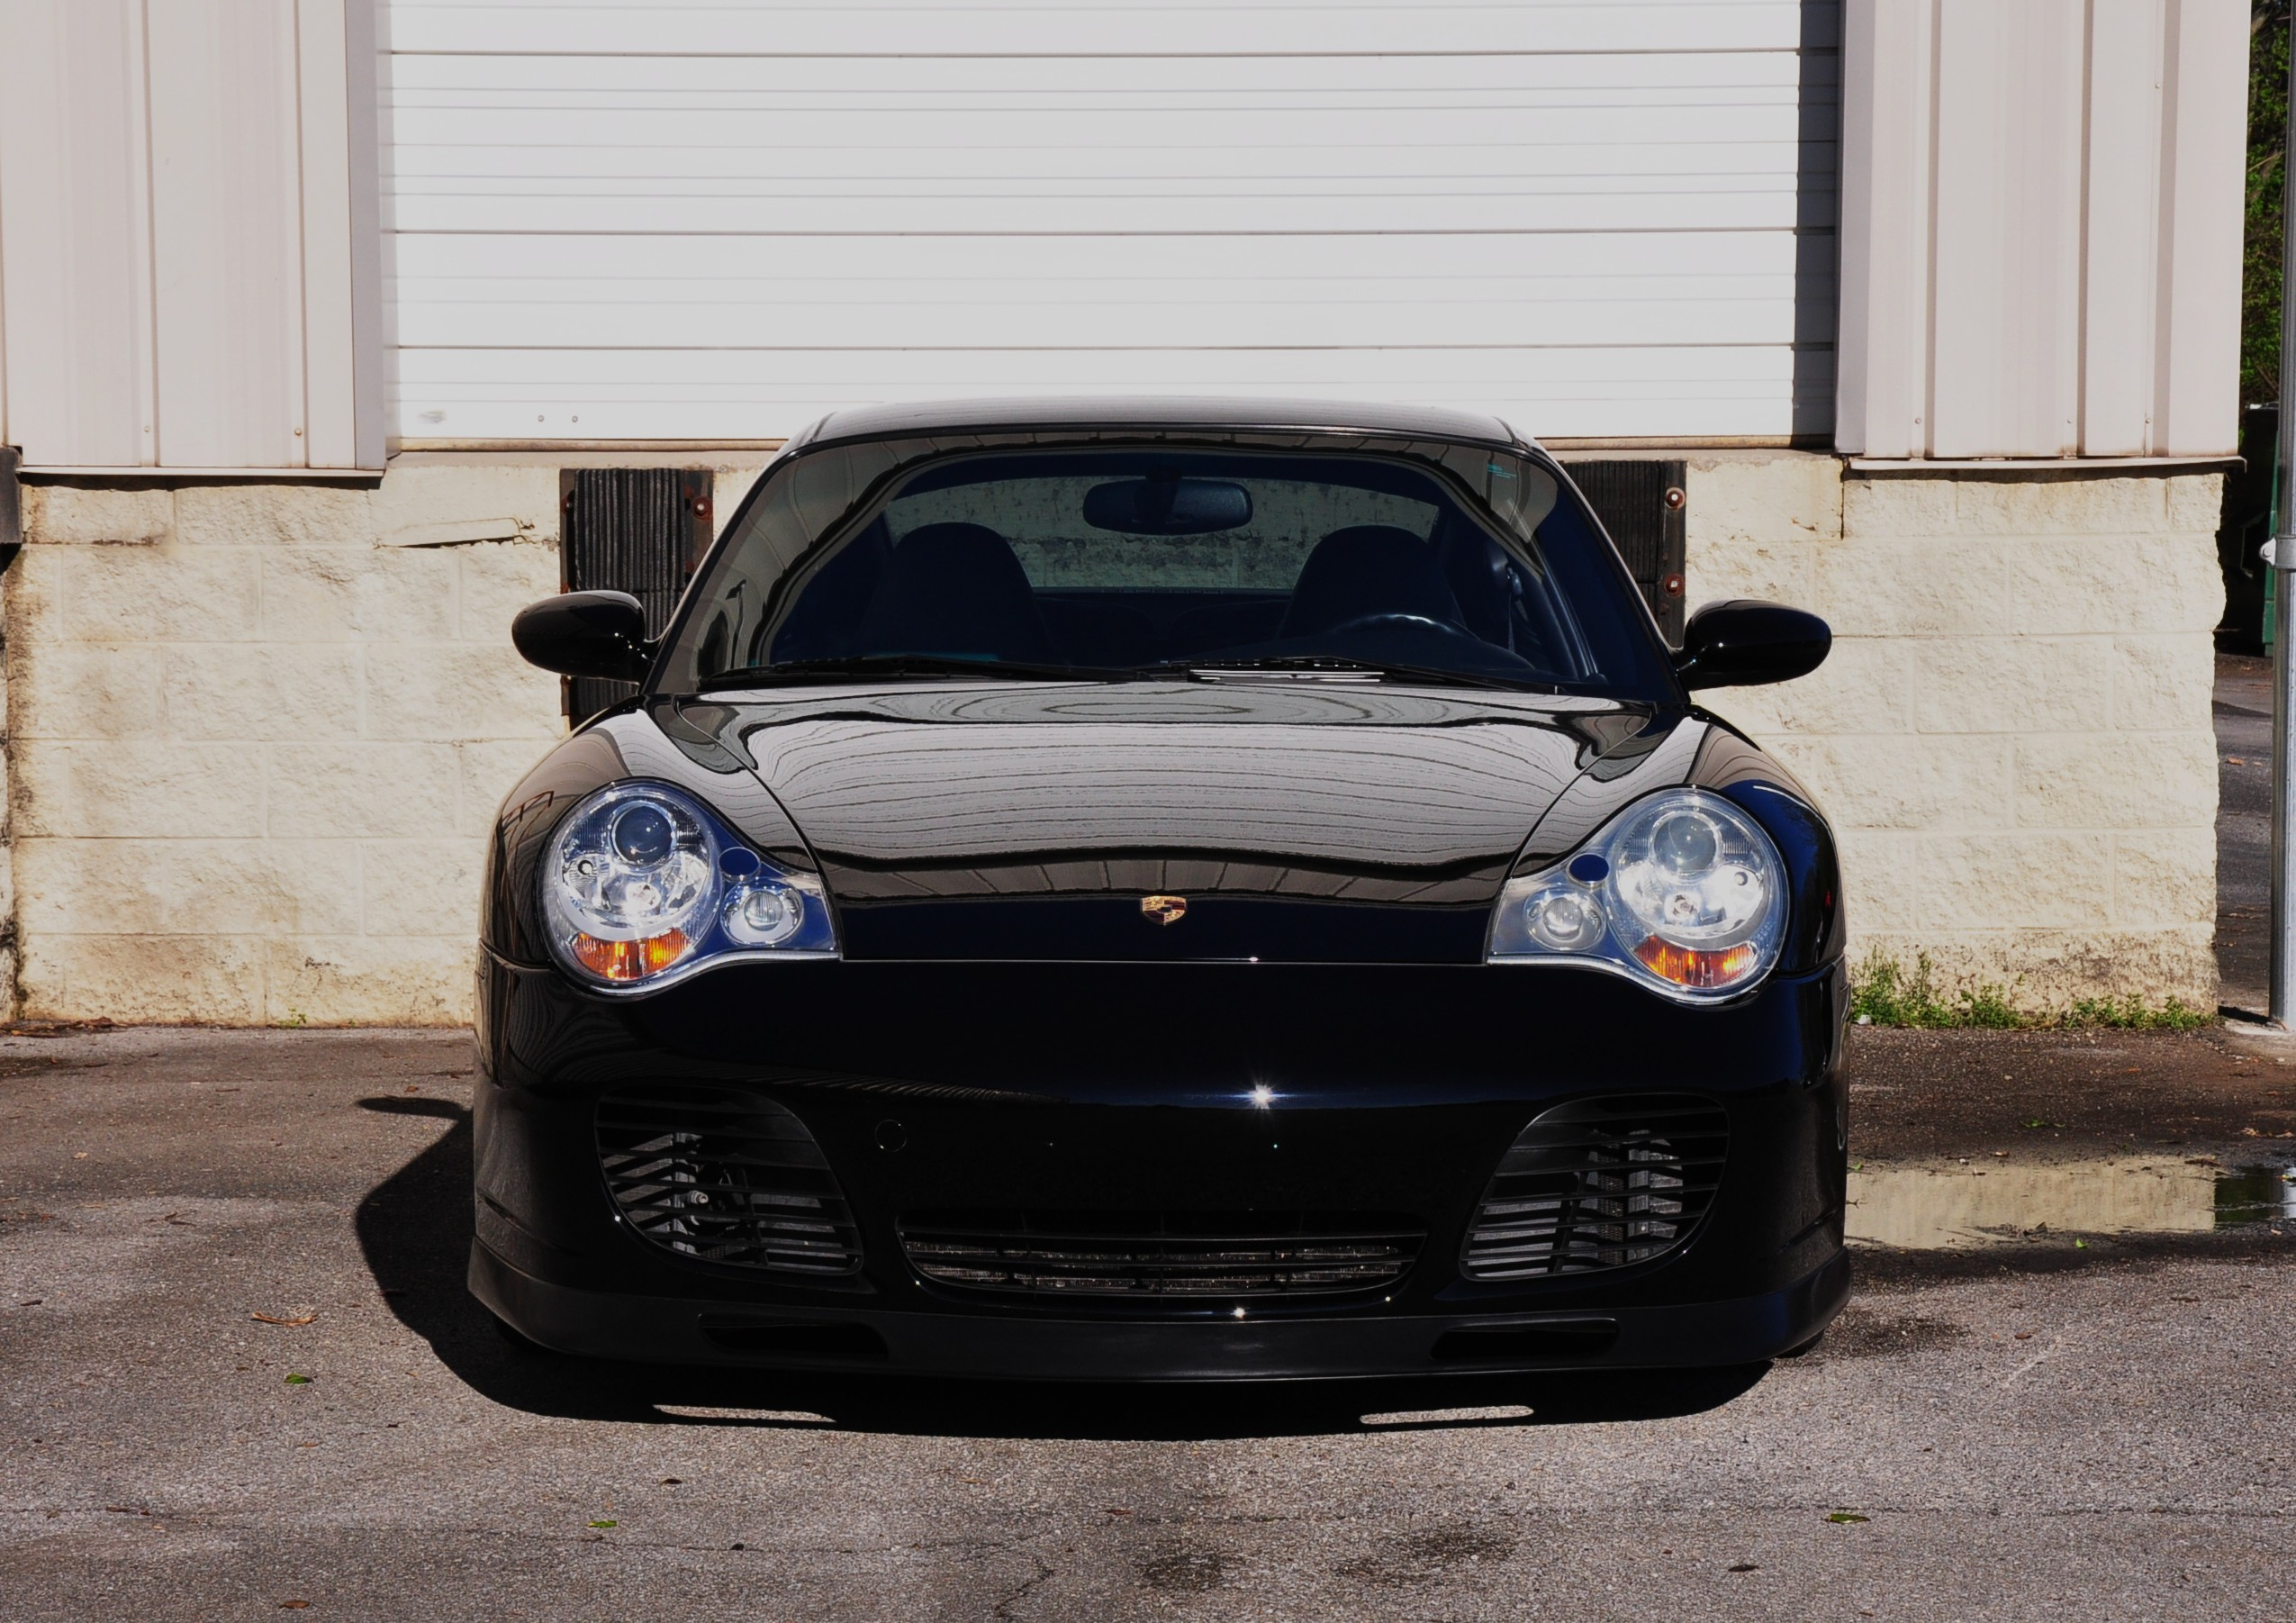 2005 Porsche 911 (996) Turbo S Coupe SOLD   Motion Consulting